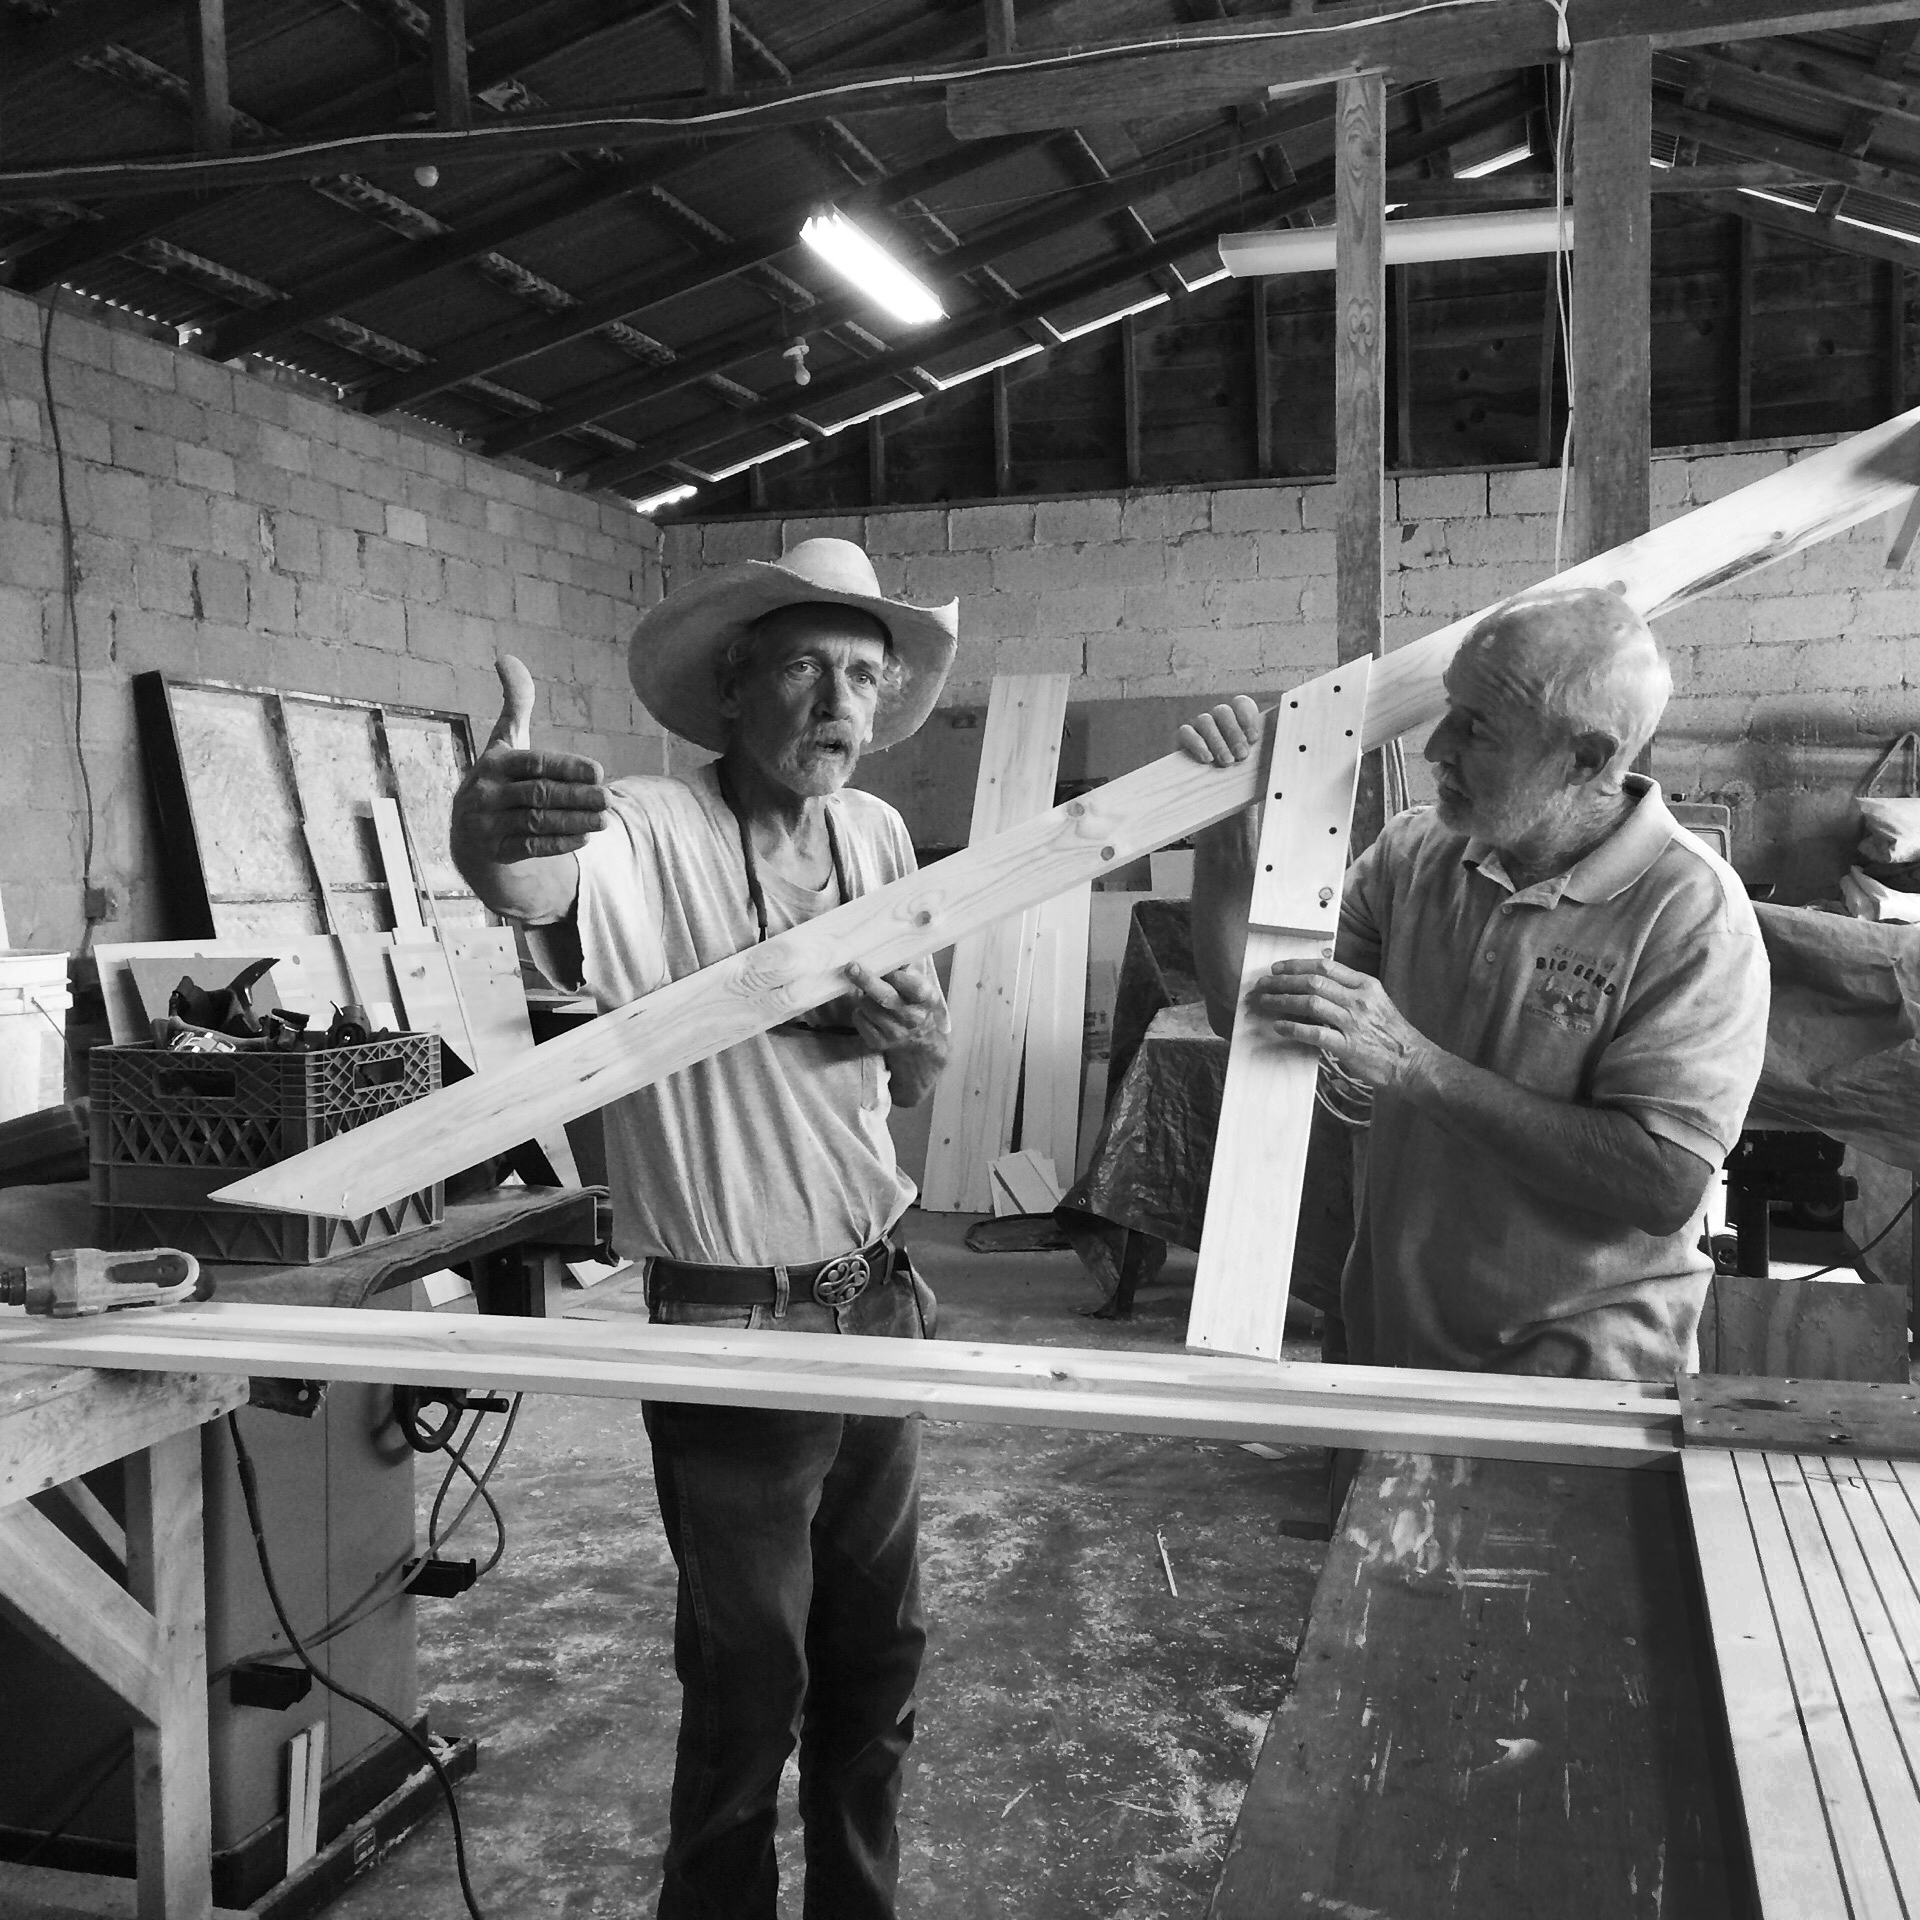 Matt Campbell, Alpine's resident master set builder and 2nd unit producer Mike McShane go over assembly details for the pine frame used for DJ's portrait. The ten foot high frame was designed to match the proportions of Texas Monthly, of which DJ was the art director for more than 15 years before joining Pentagram.